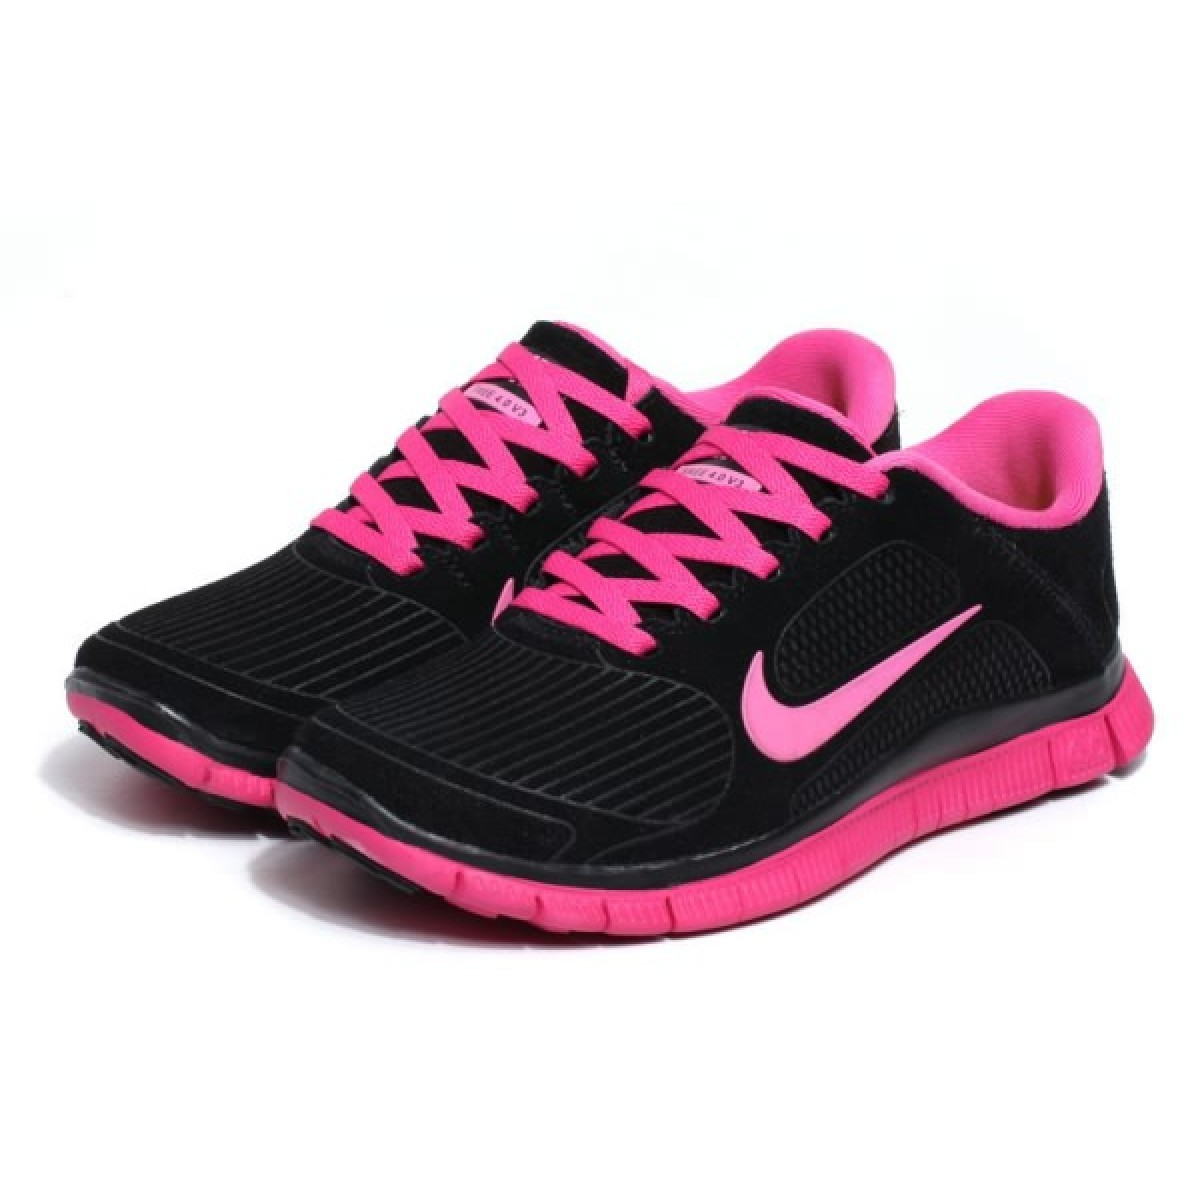 1200x1200 Pink Running Shoes Clipart